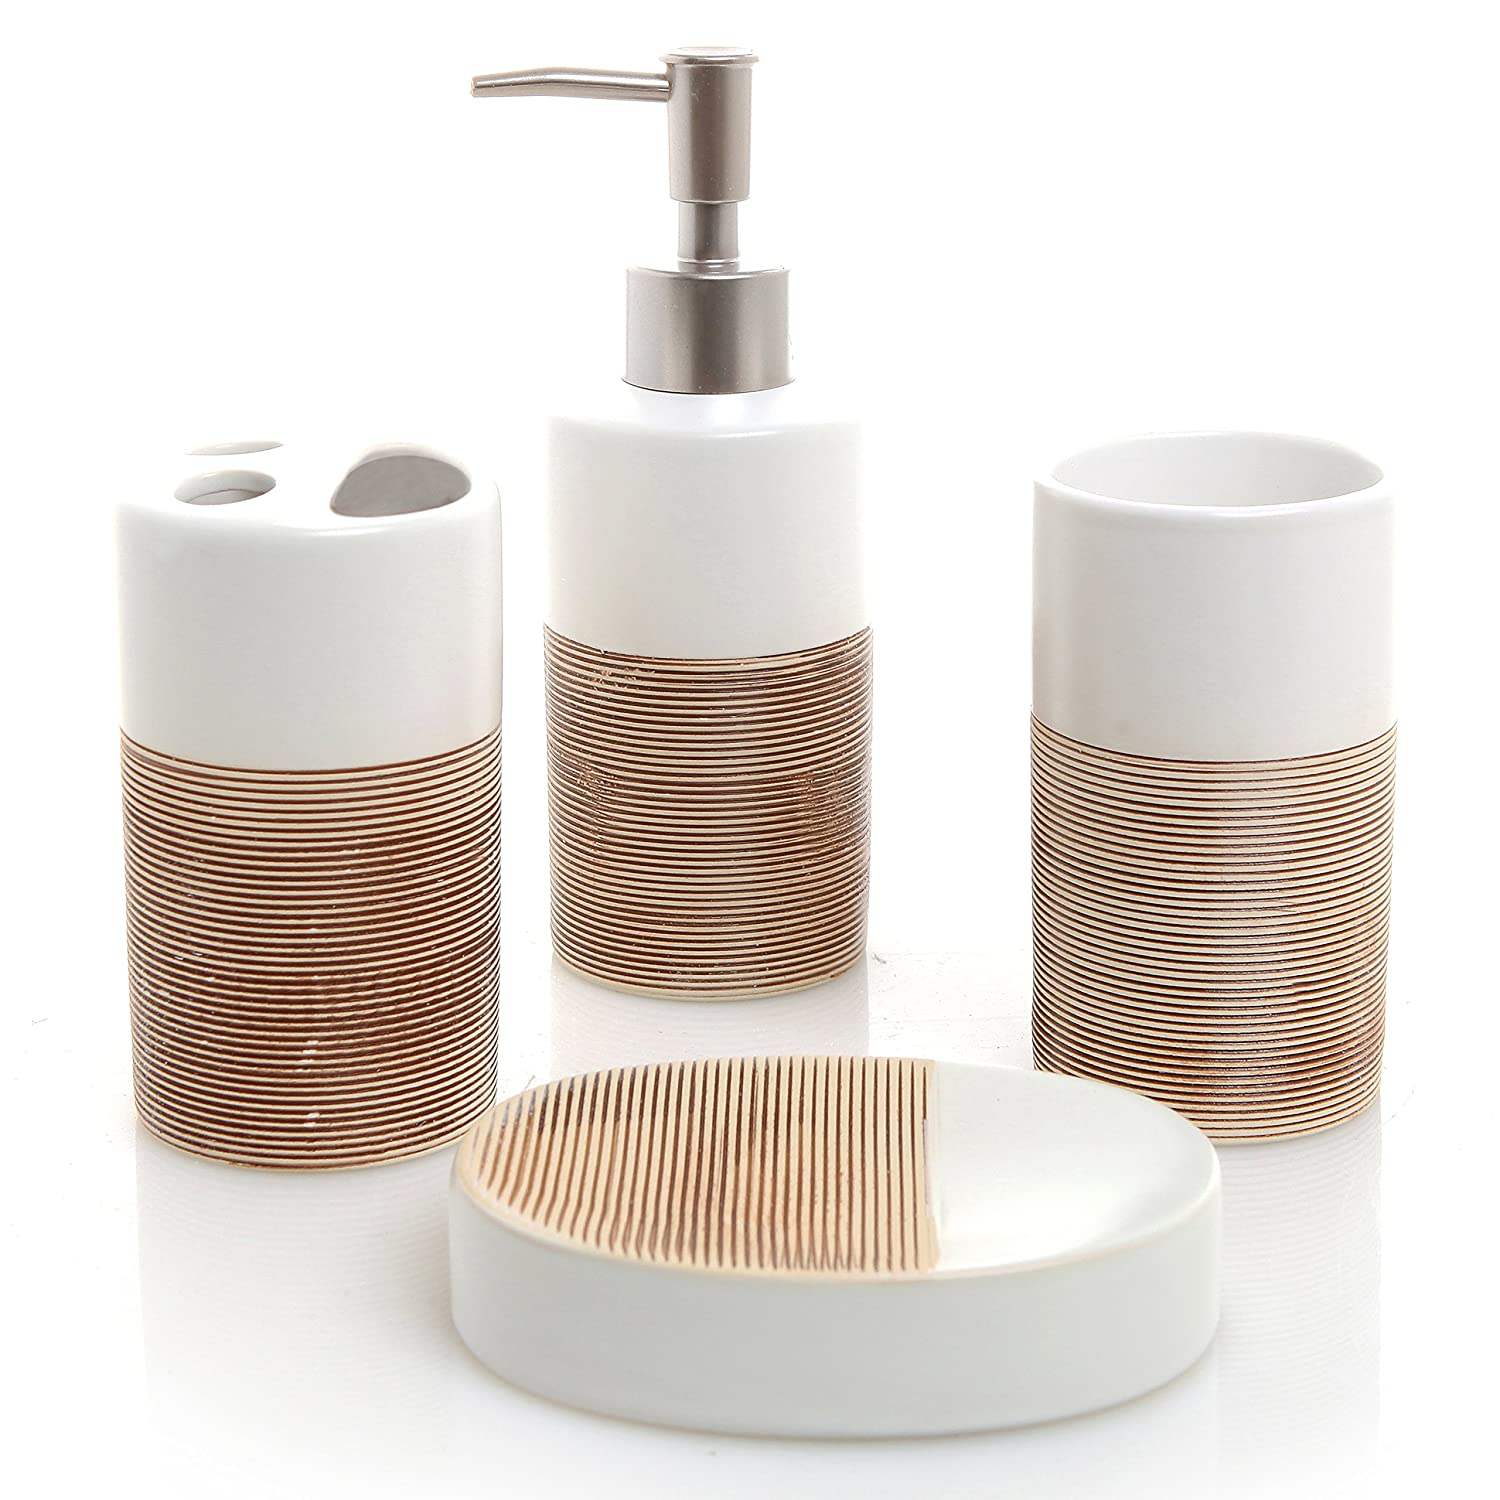 Amazon.com: MyGift Deluxe 4 Piece White & Beige Ceramic Bathroom Set ...